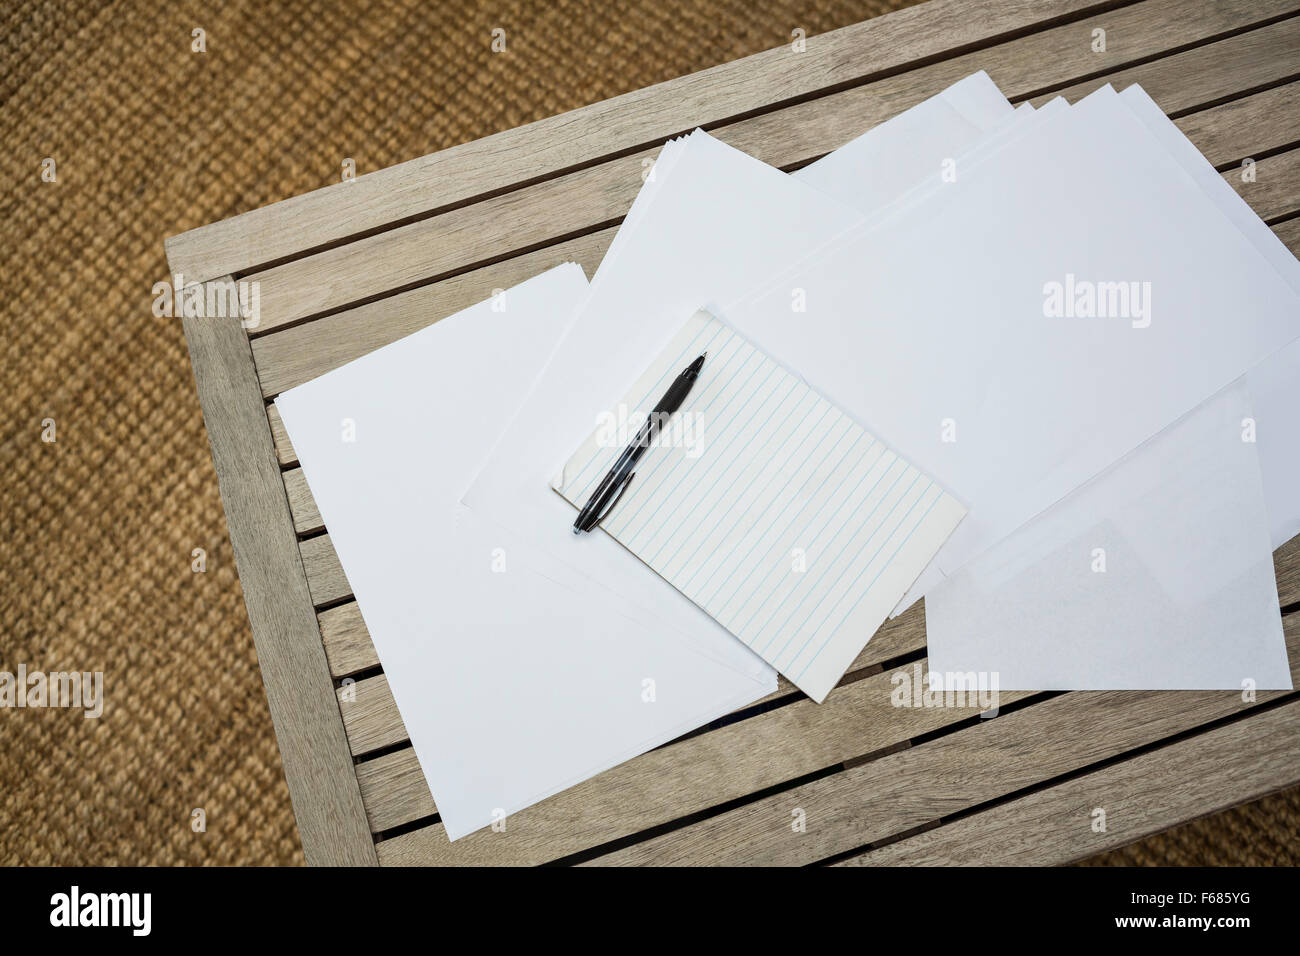 Papers on wooden table - Stock Image